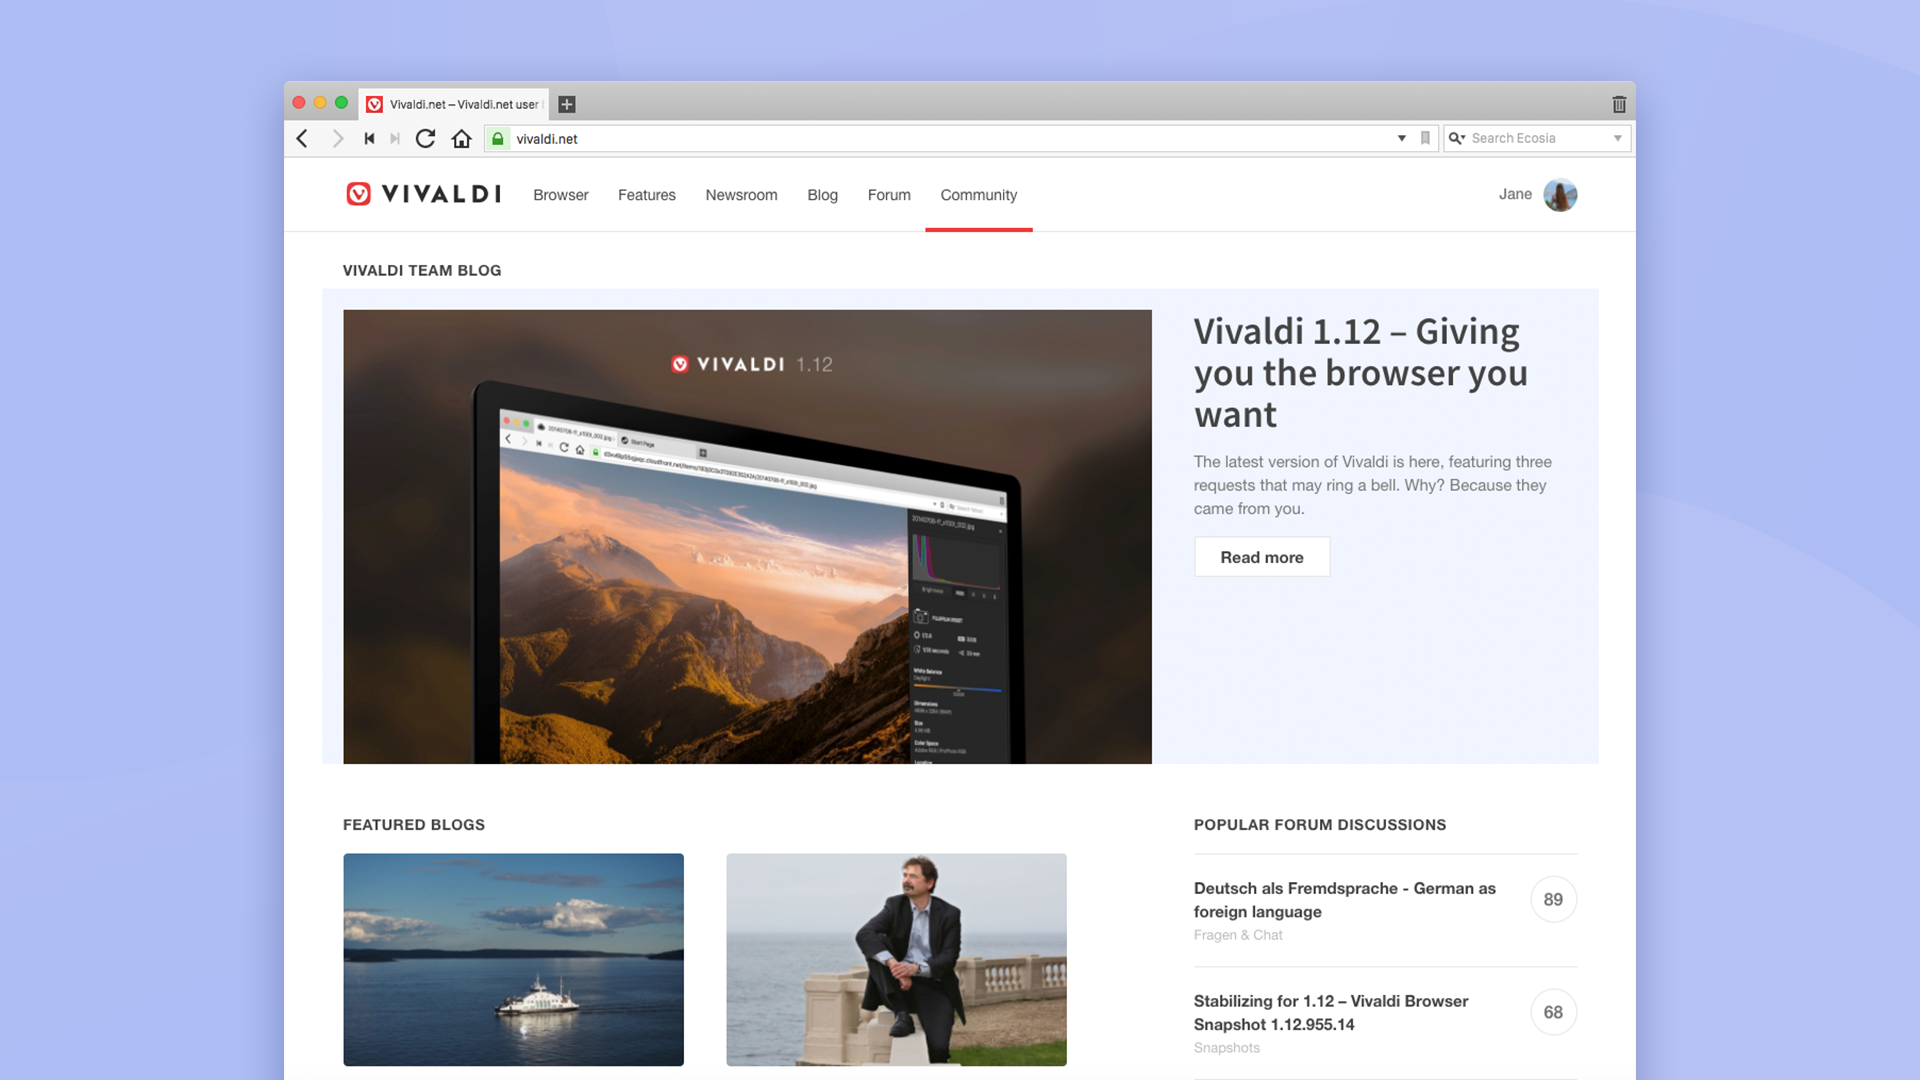 New Homepage for Vivaldi's community